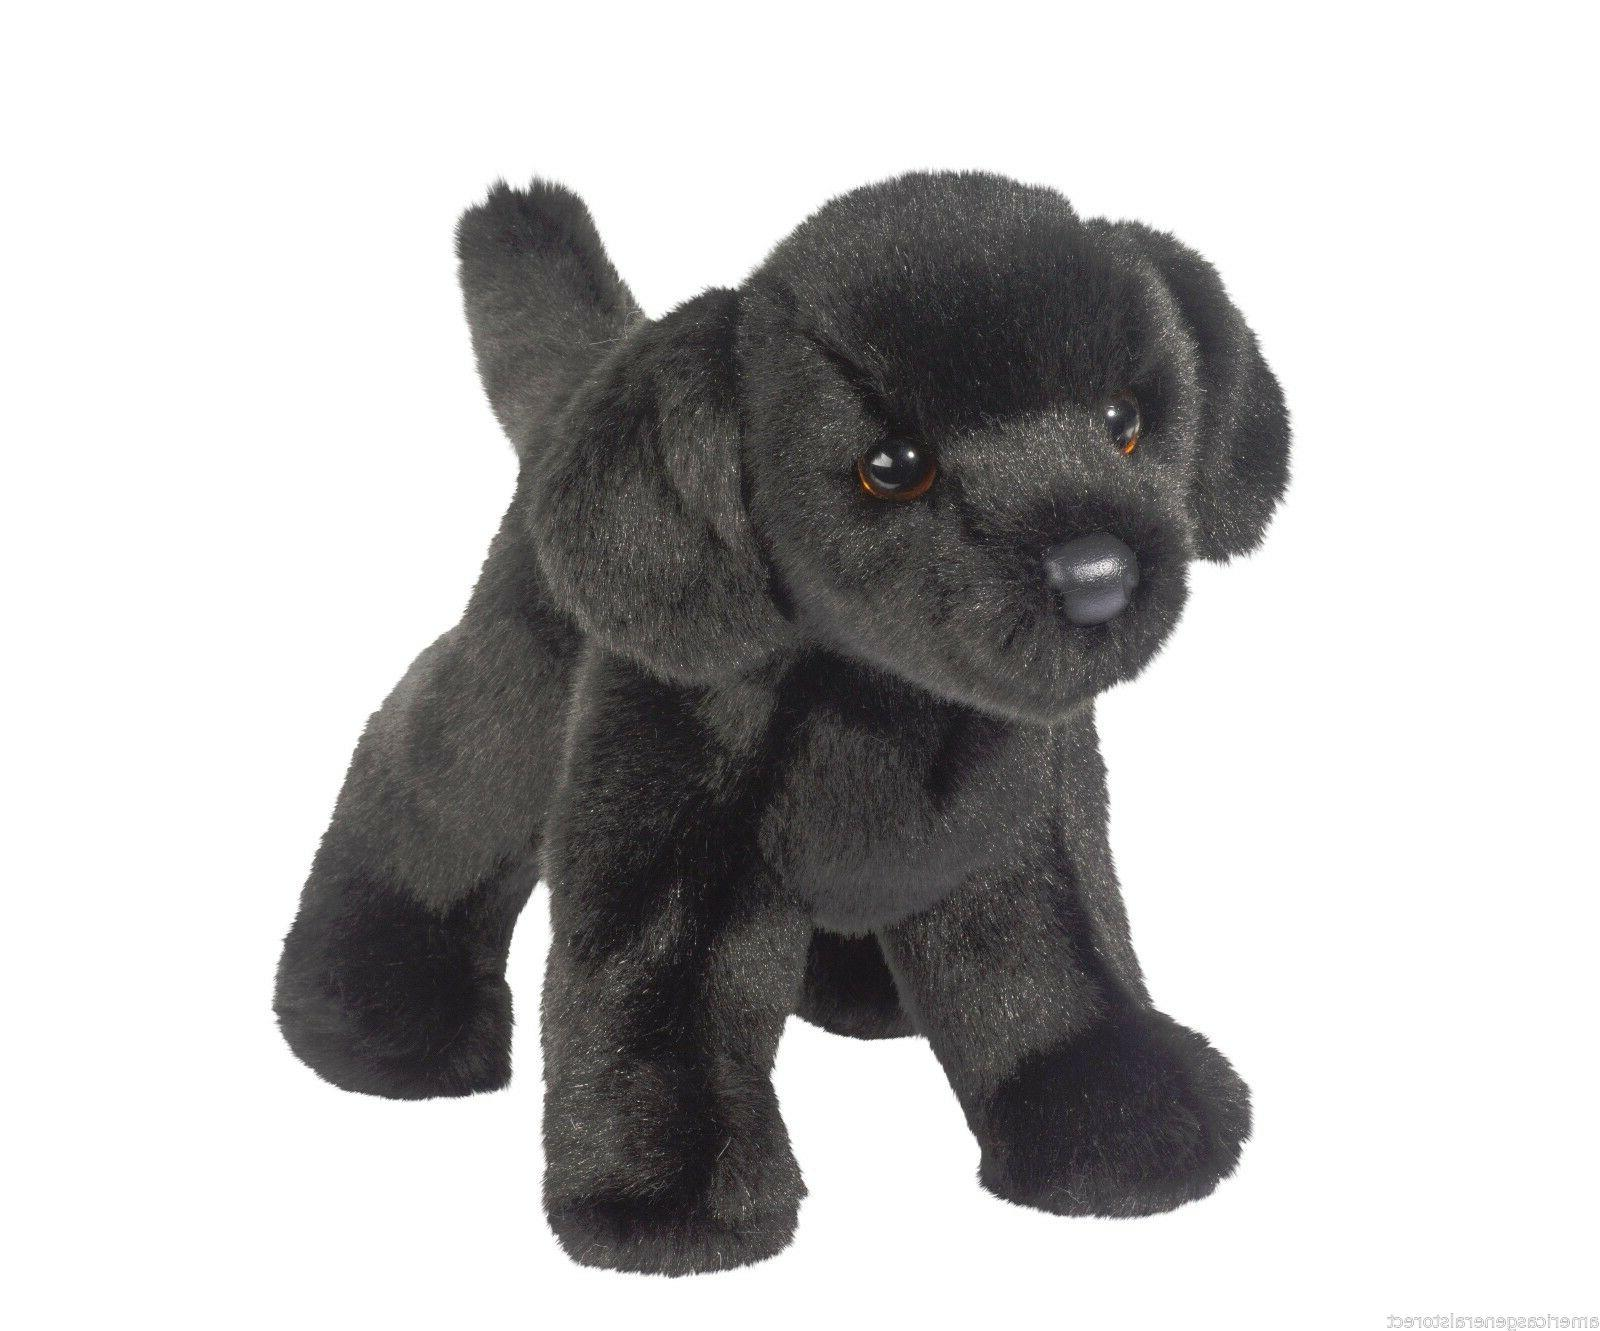 Douglas stuffed animal BEAR dog labrador toy